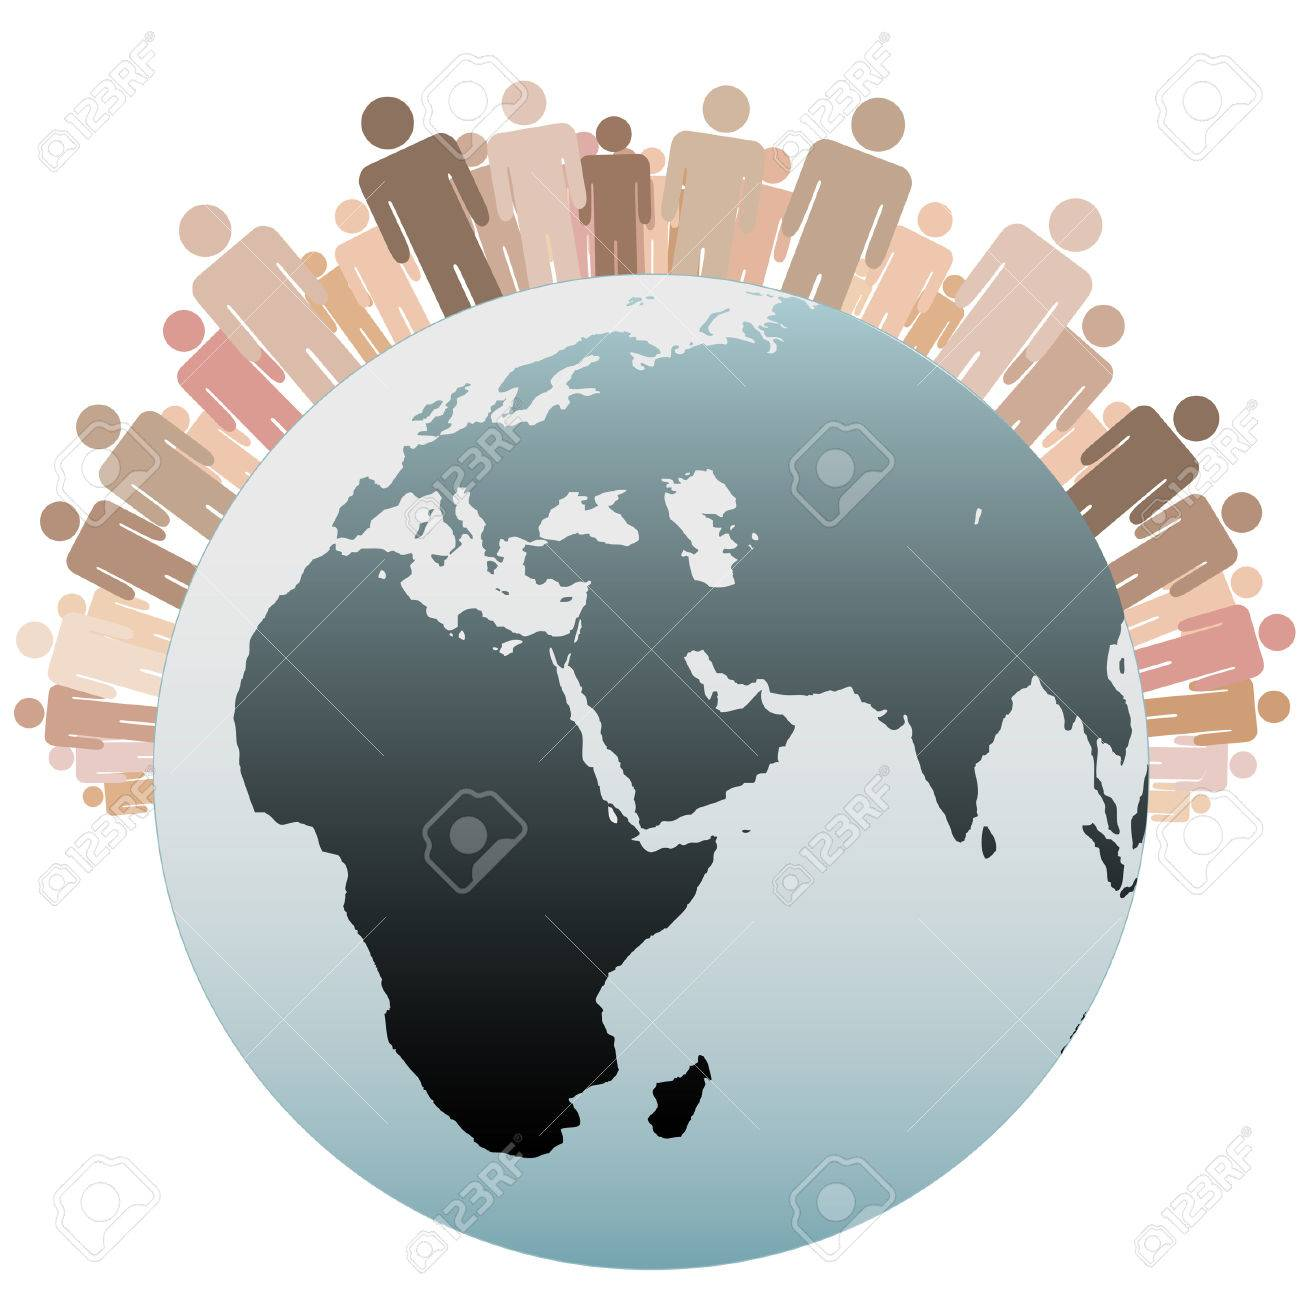 Many diverse people stand on the Western Hemisphere as symbols of the Population of Earth. - 7616461